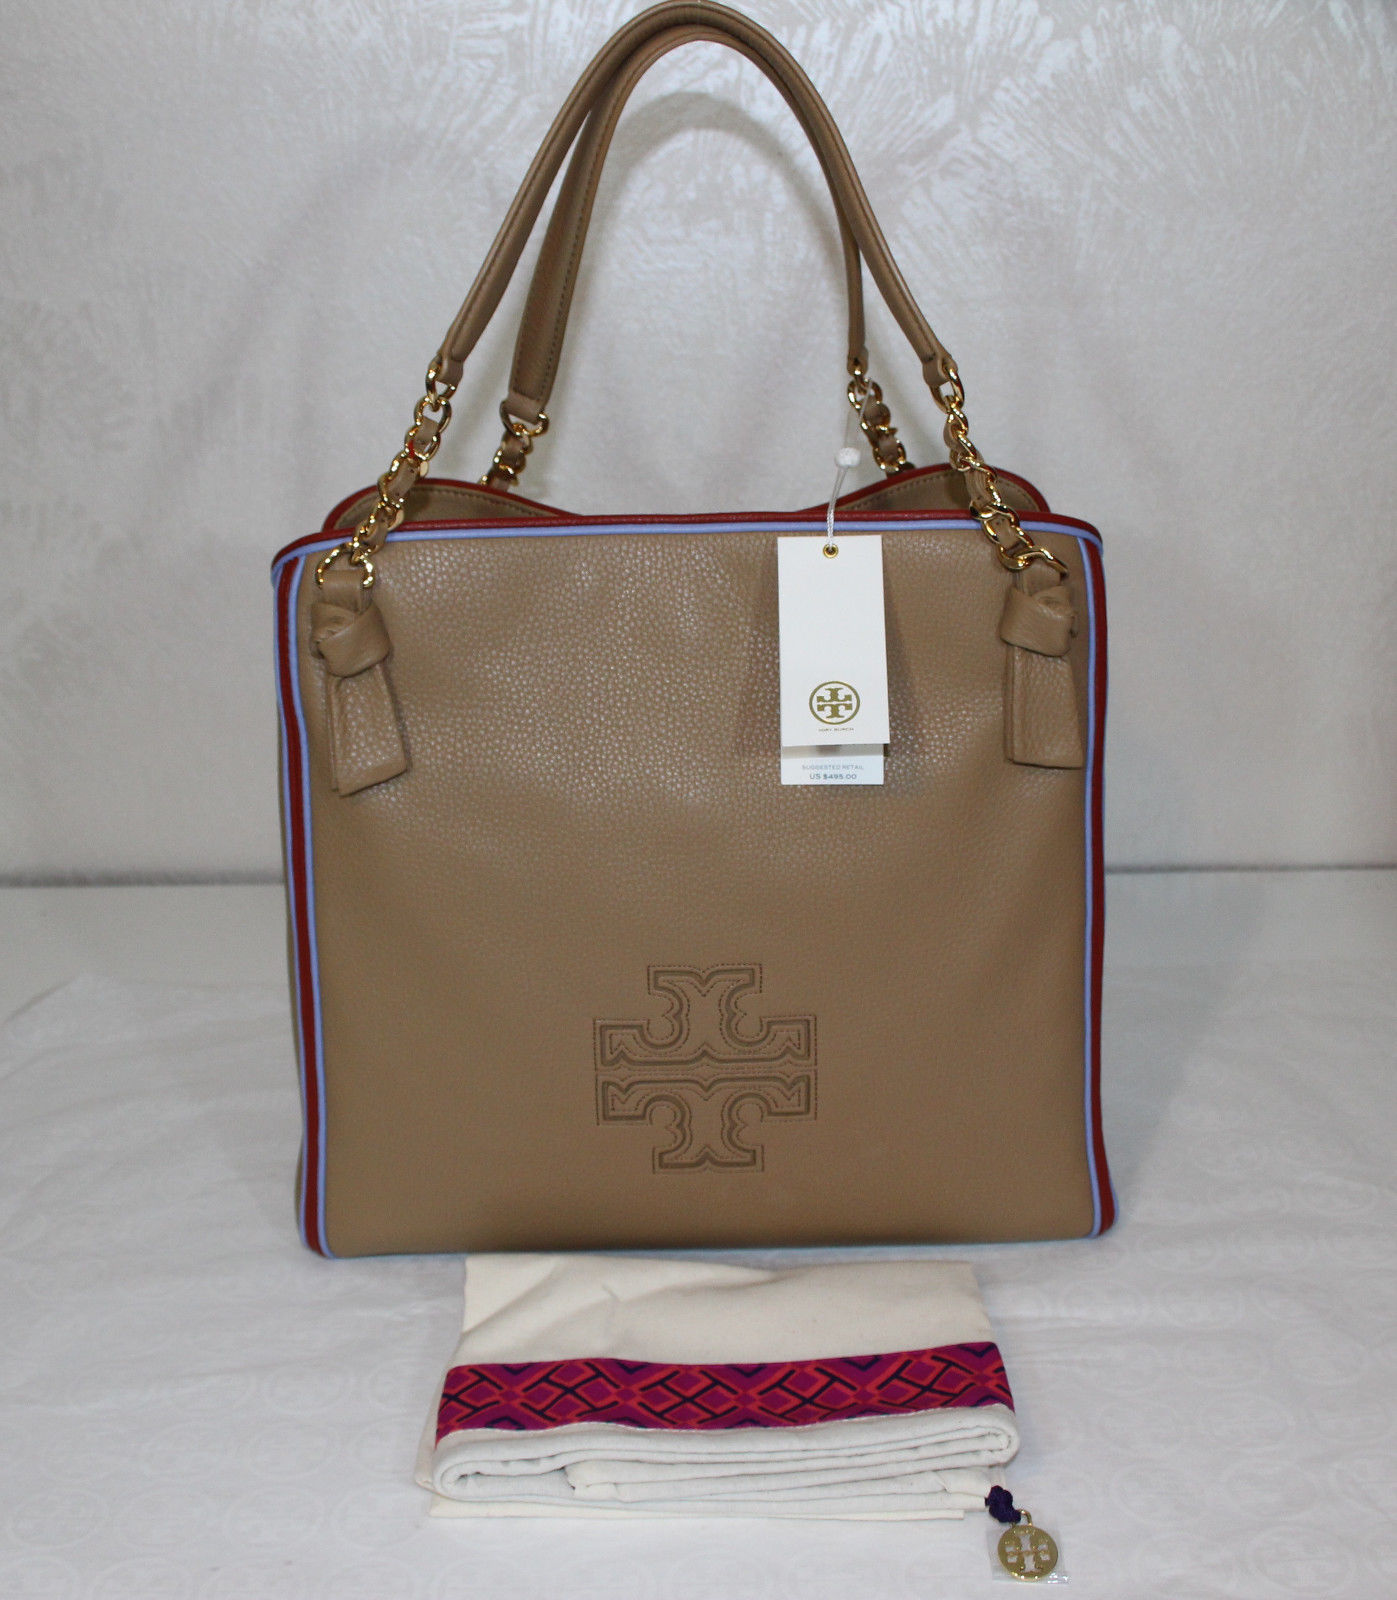 b44bf2aca89b 57. 57. Previous. Tory Burch Harper Stripe Tote Bag Center Zip Camel Tan  Pebbled Leather  500